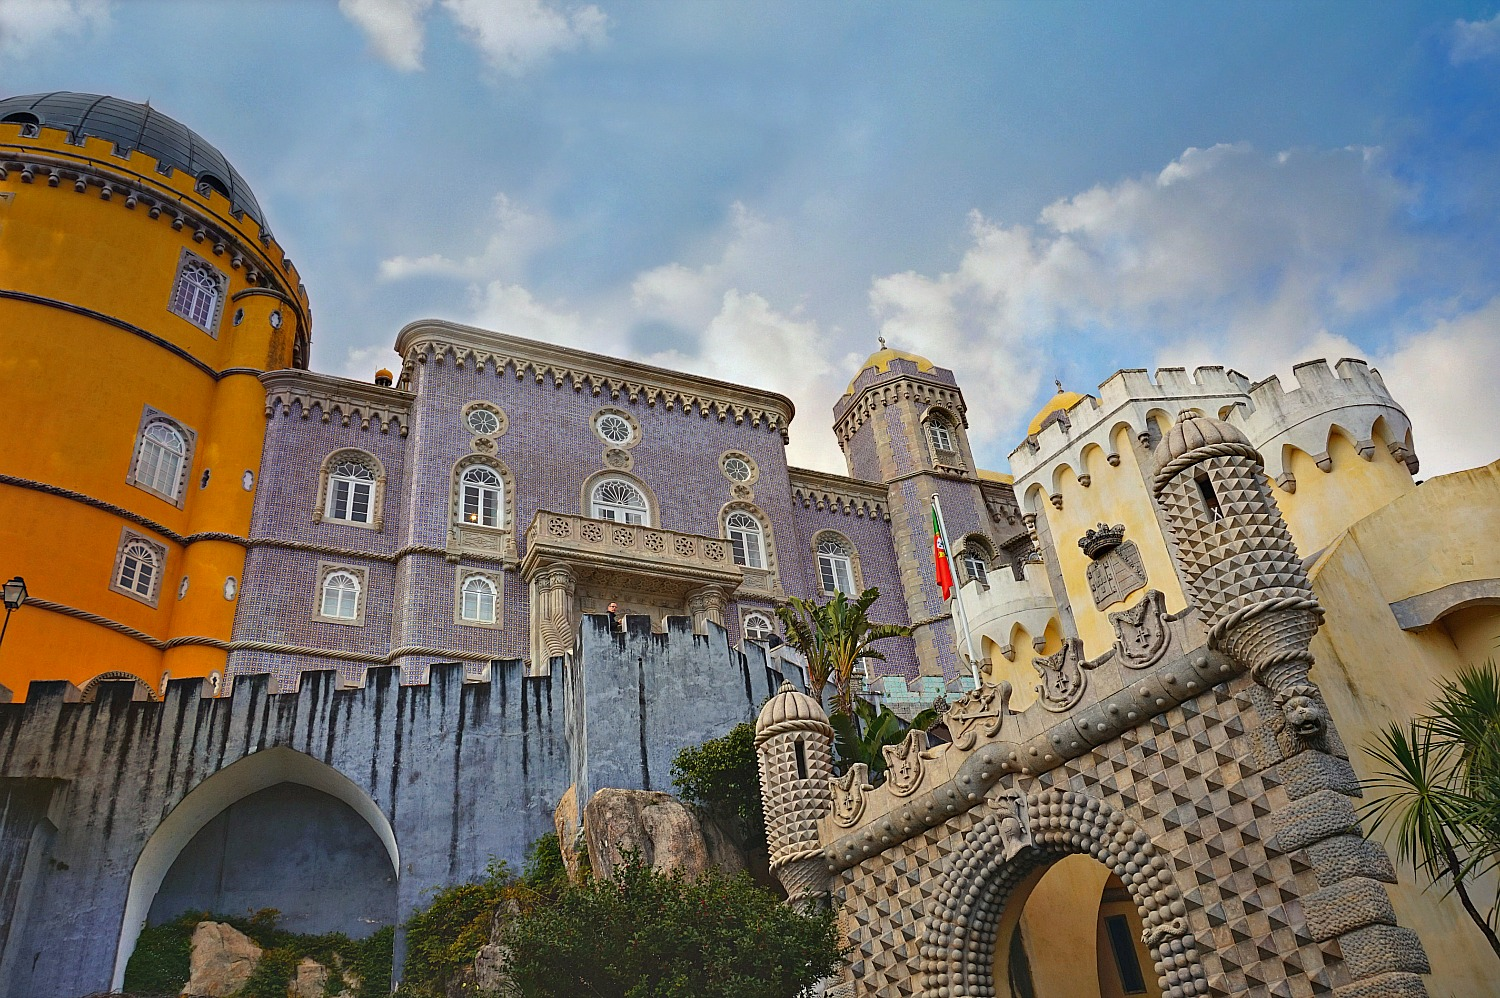 Portugal - one day itinerary. With a mix of styles and colors, Pena Palace is one of Europe's most unique attractions.